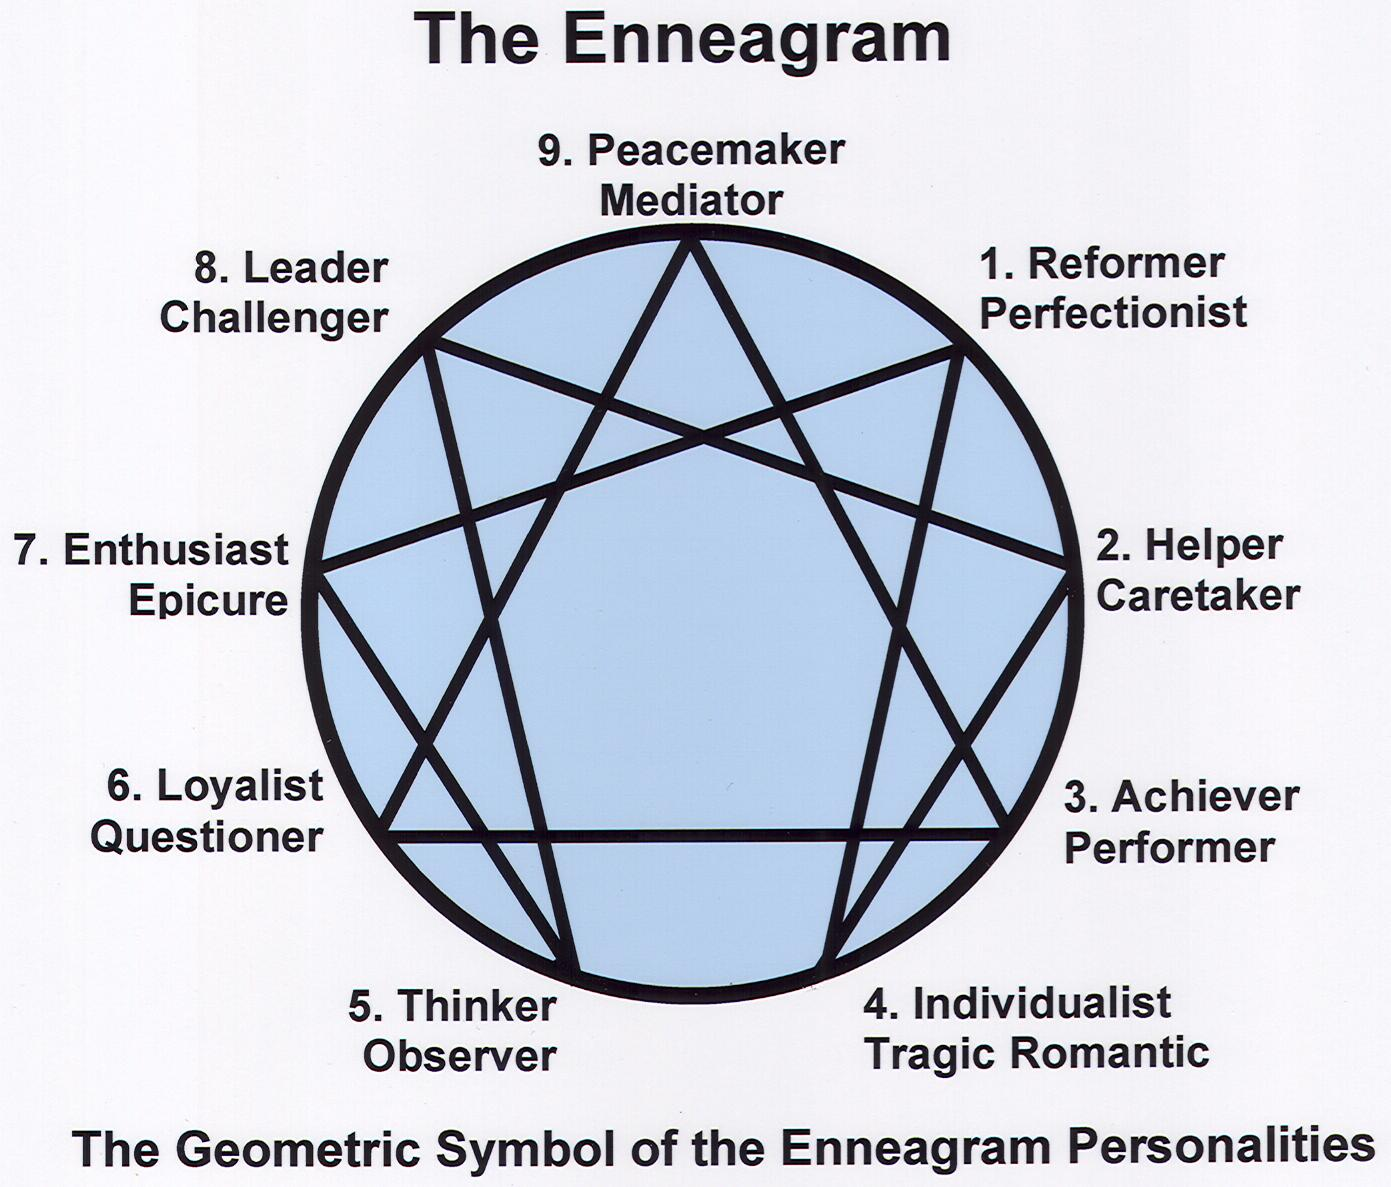 Take the quiz: What Is Your Enneagram Personality Type?